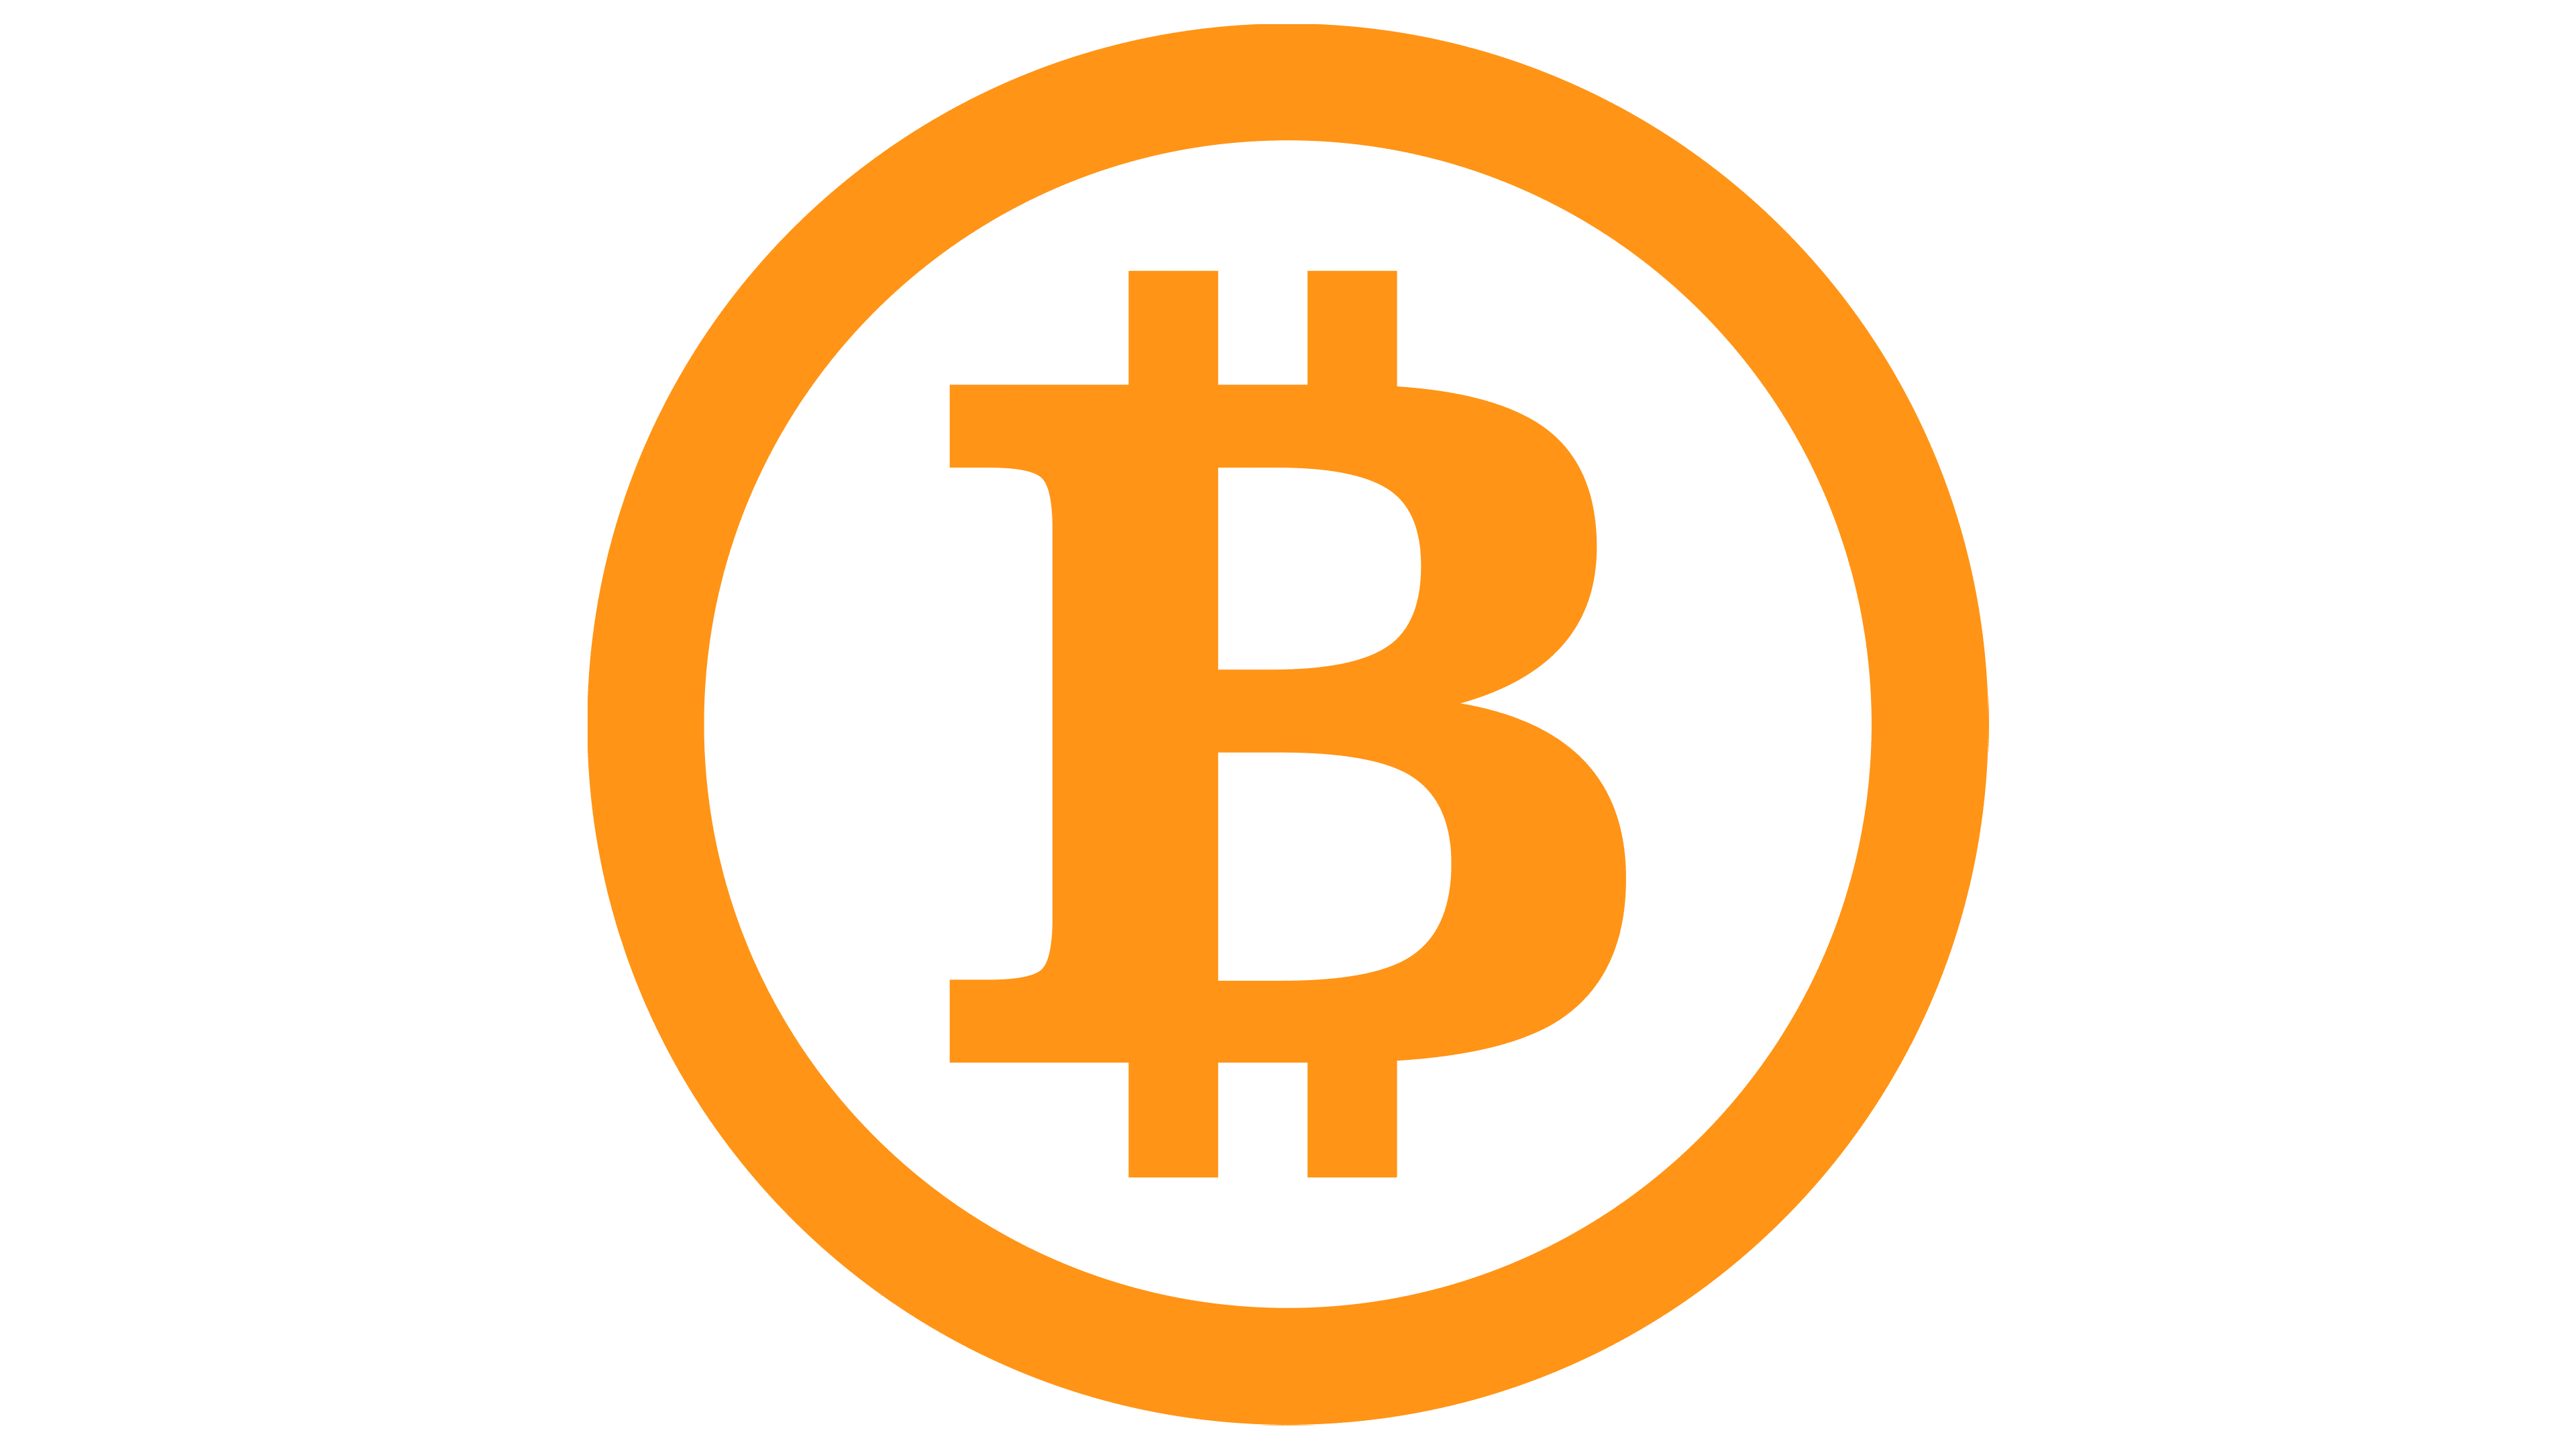 Bitcoin Logo The Most Famous Brands And Company Logos In The World